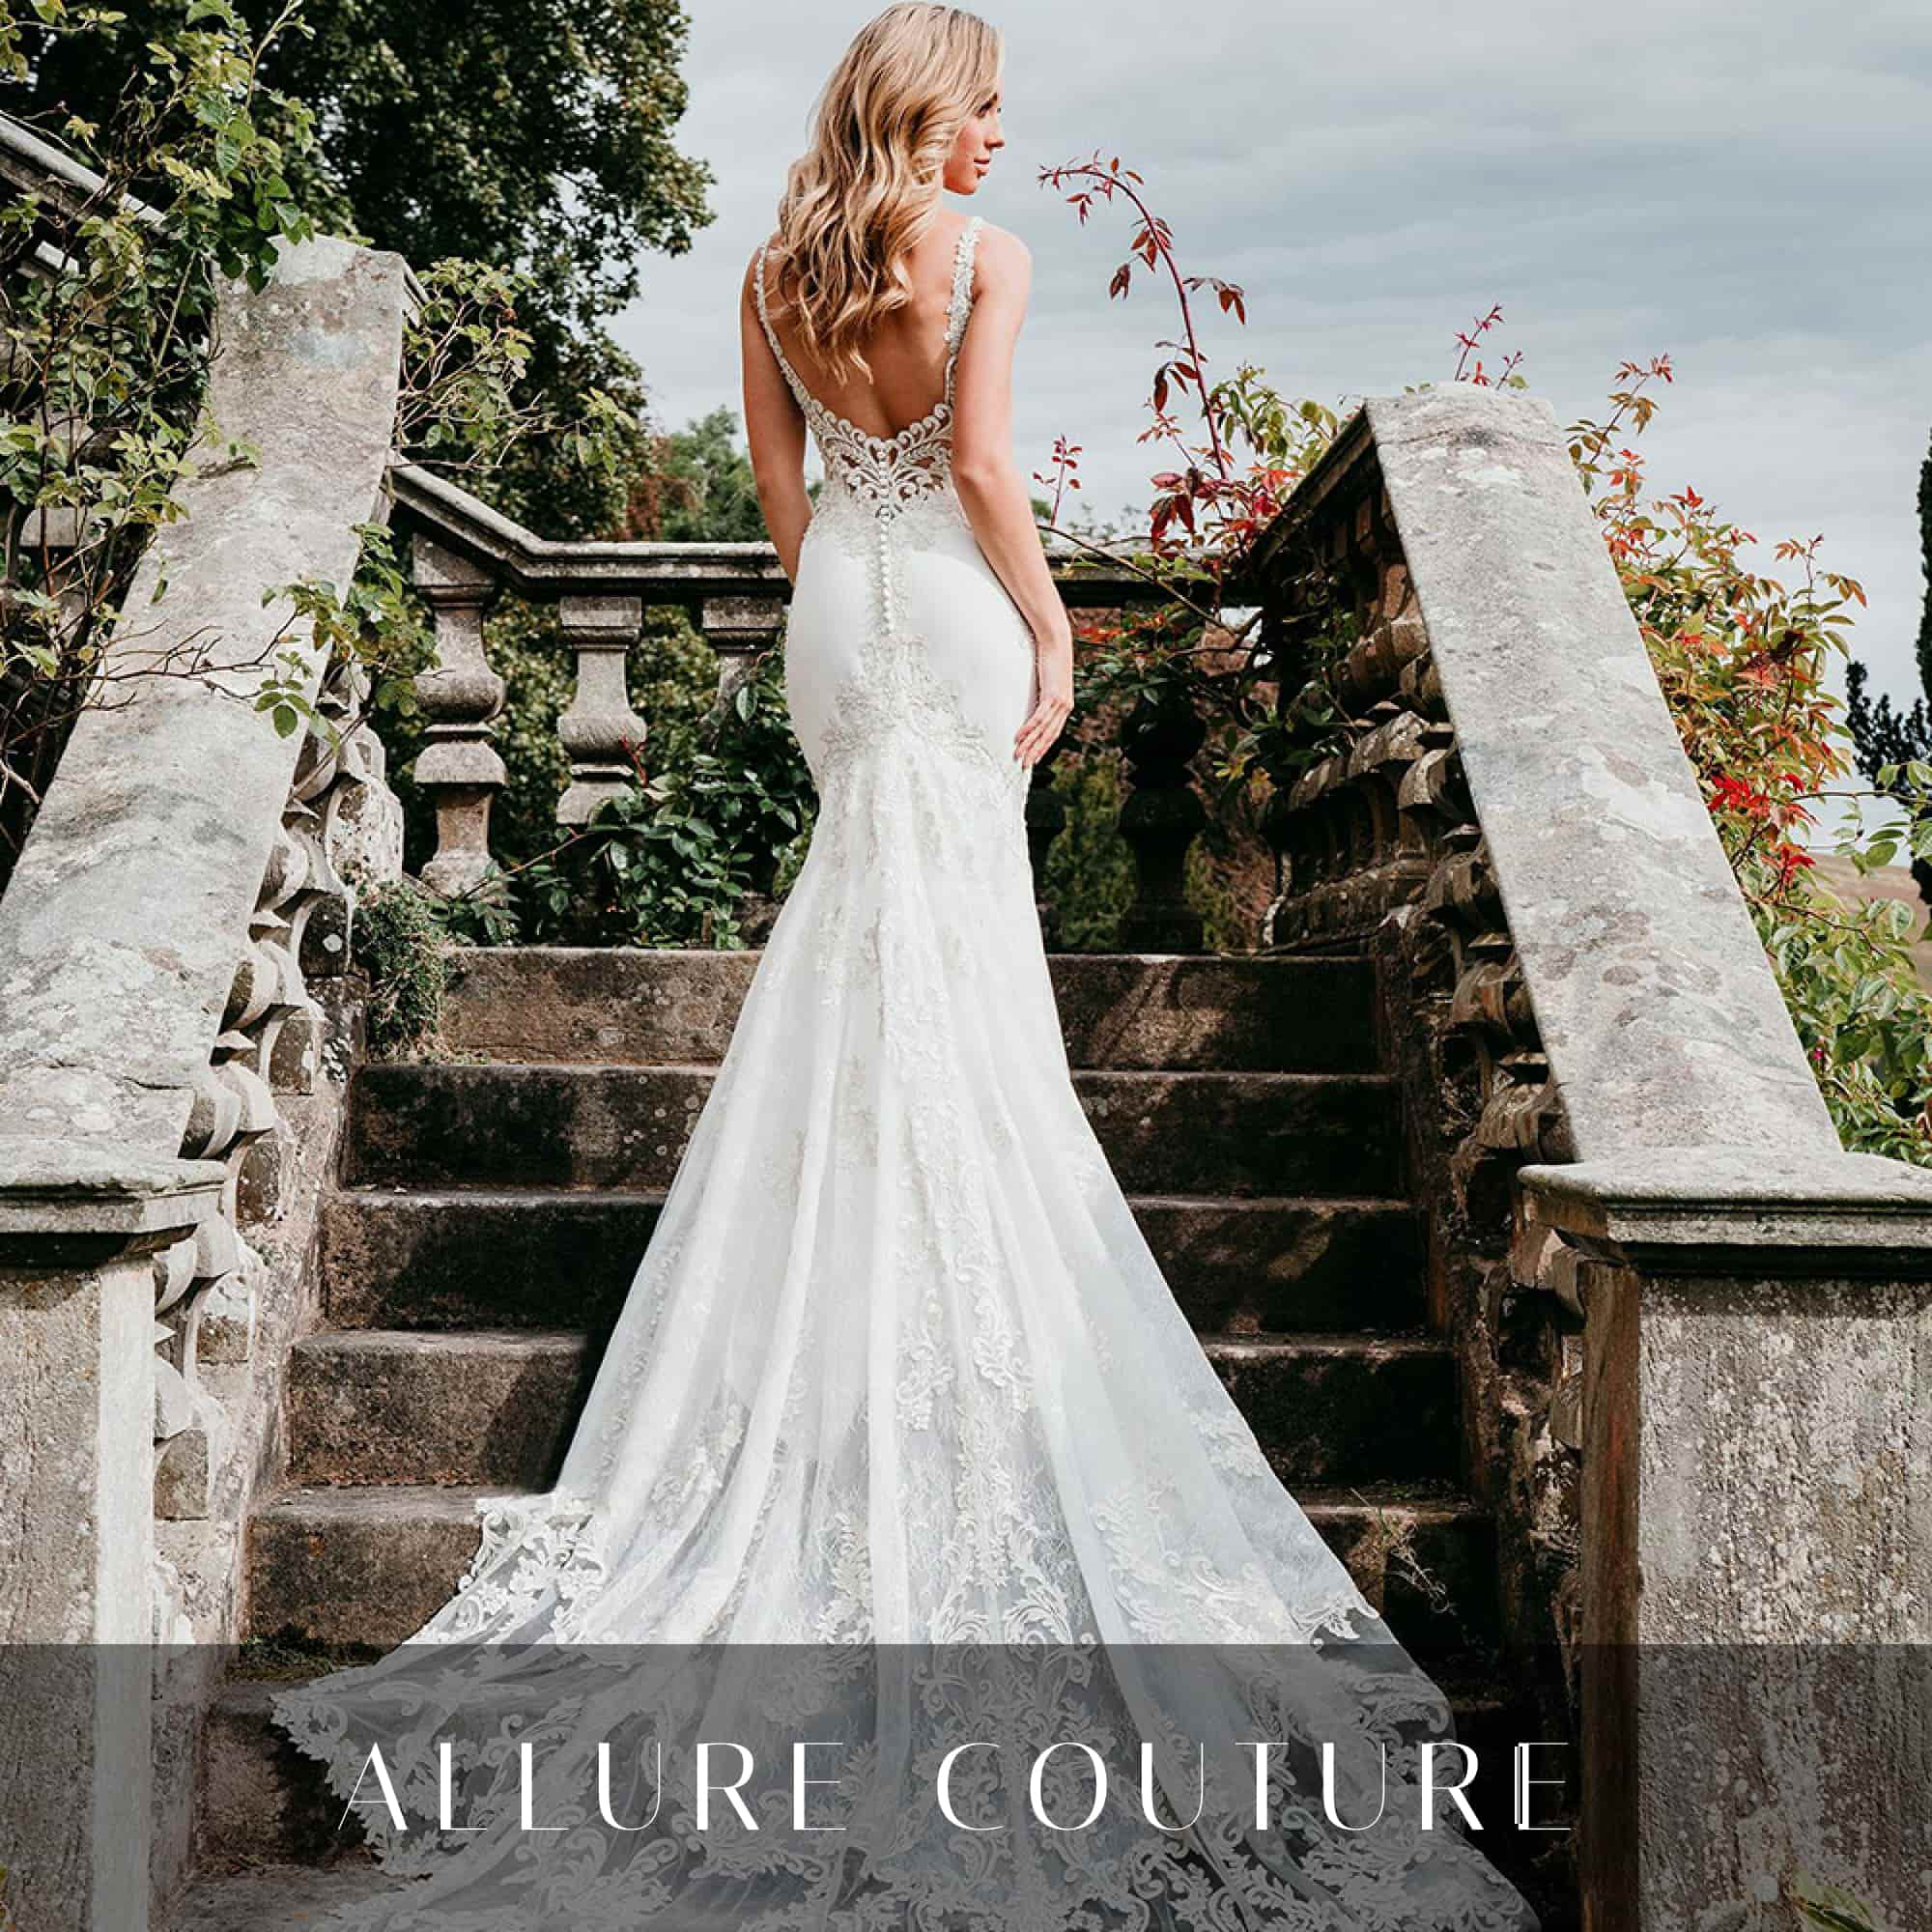 Allure Couture Wedding Dresses